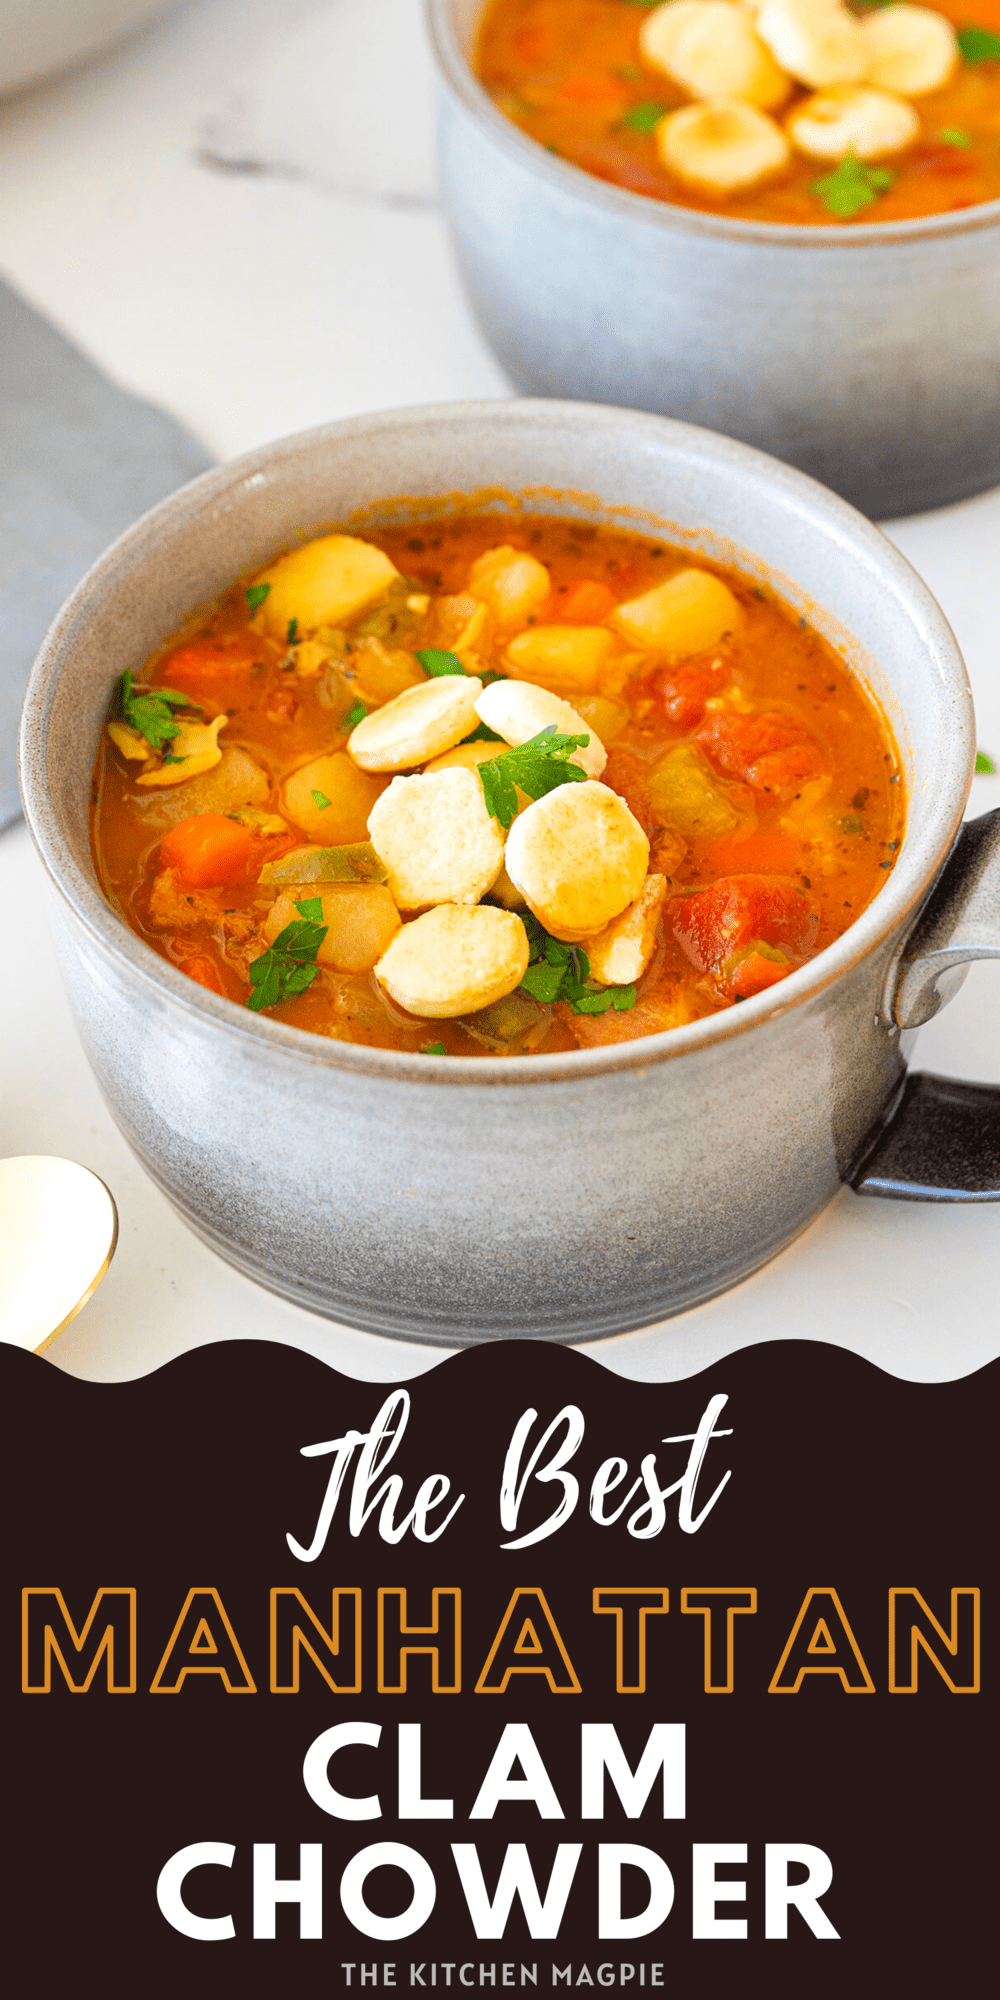 Manhattan Clam Chowder is a delicious tomato-based clam chowder loaded with clams and vegetables, and served with oyster crackers on top!